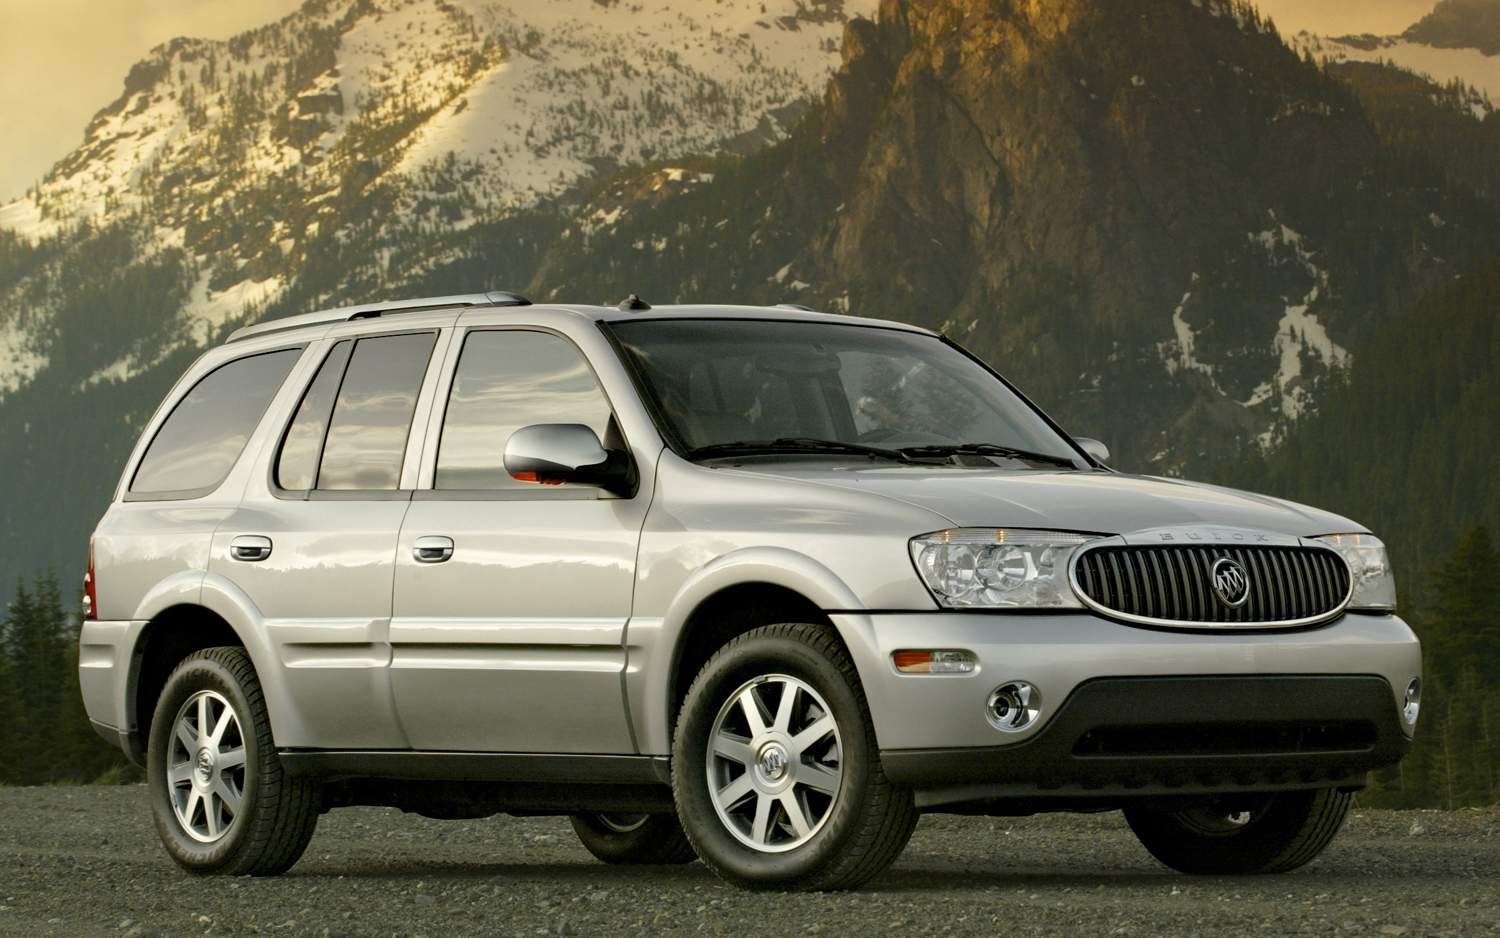 2005 Buick Rainier Suspension Problems Wiring Diagram Gm Will Pay To Repair Faulty Fuel Gauges On 2007 Suvs Motor Trend Rh Motortrend